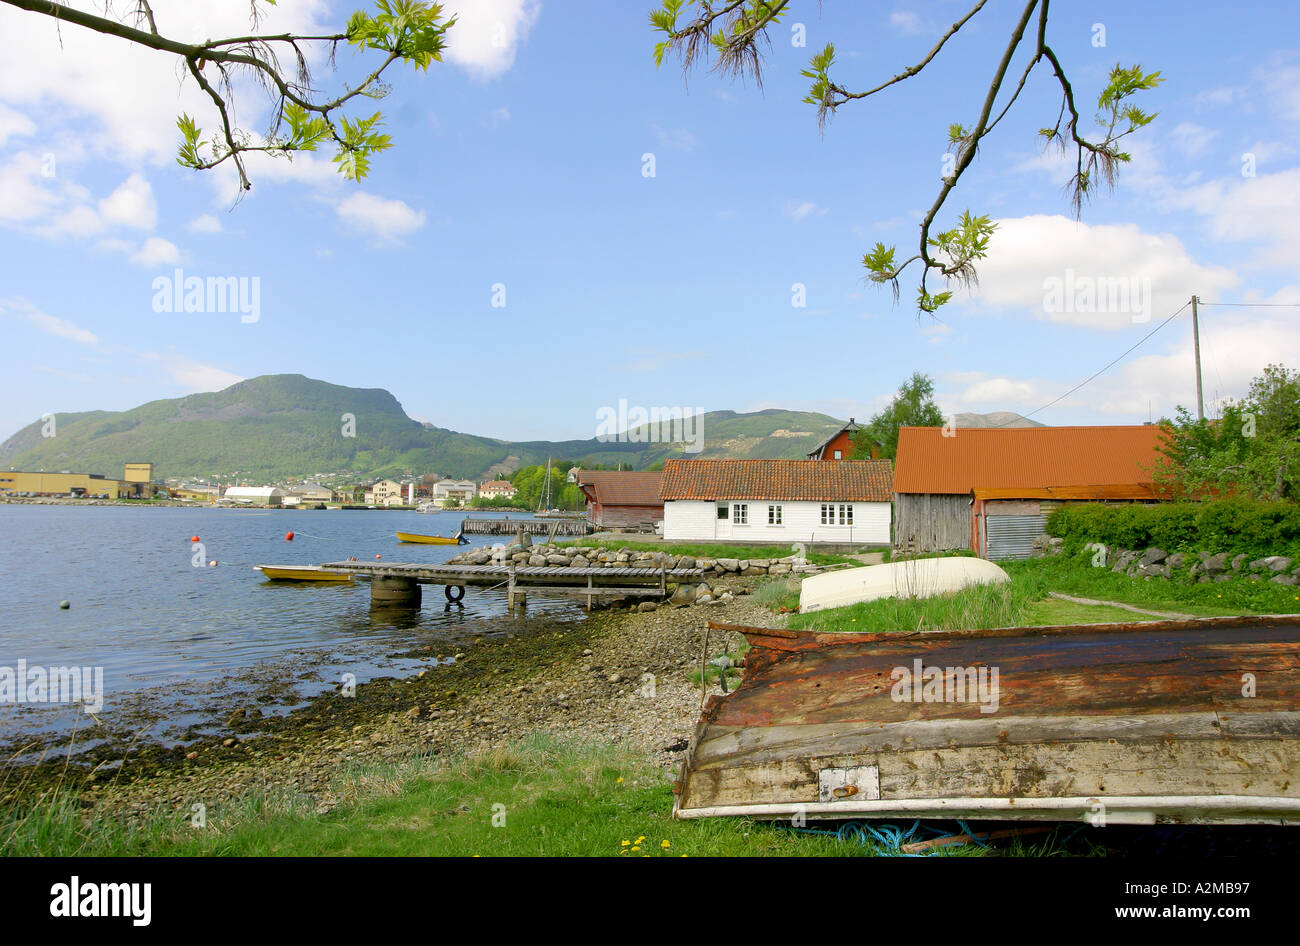 Boat housees in Ryfylke, Norway. - Stock Image